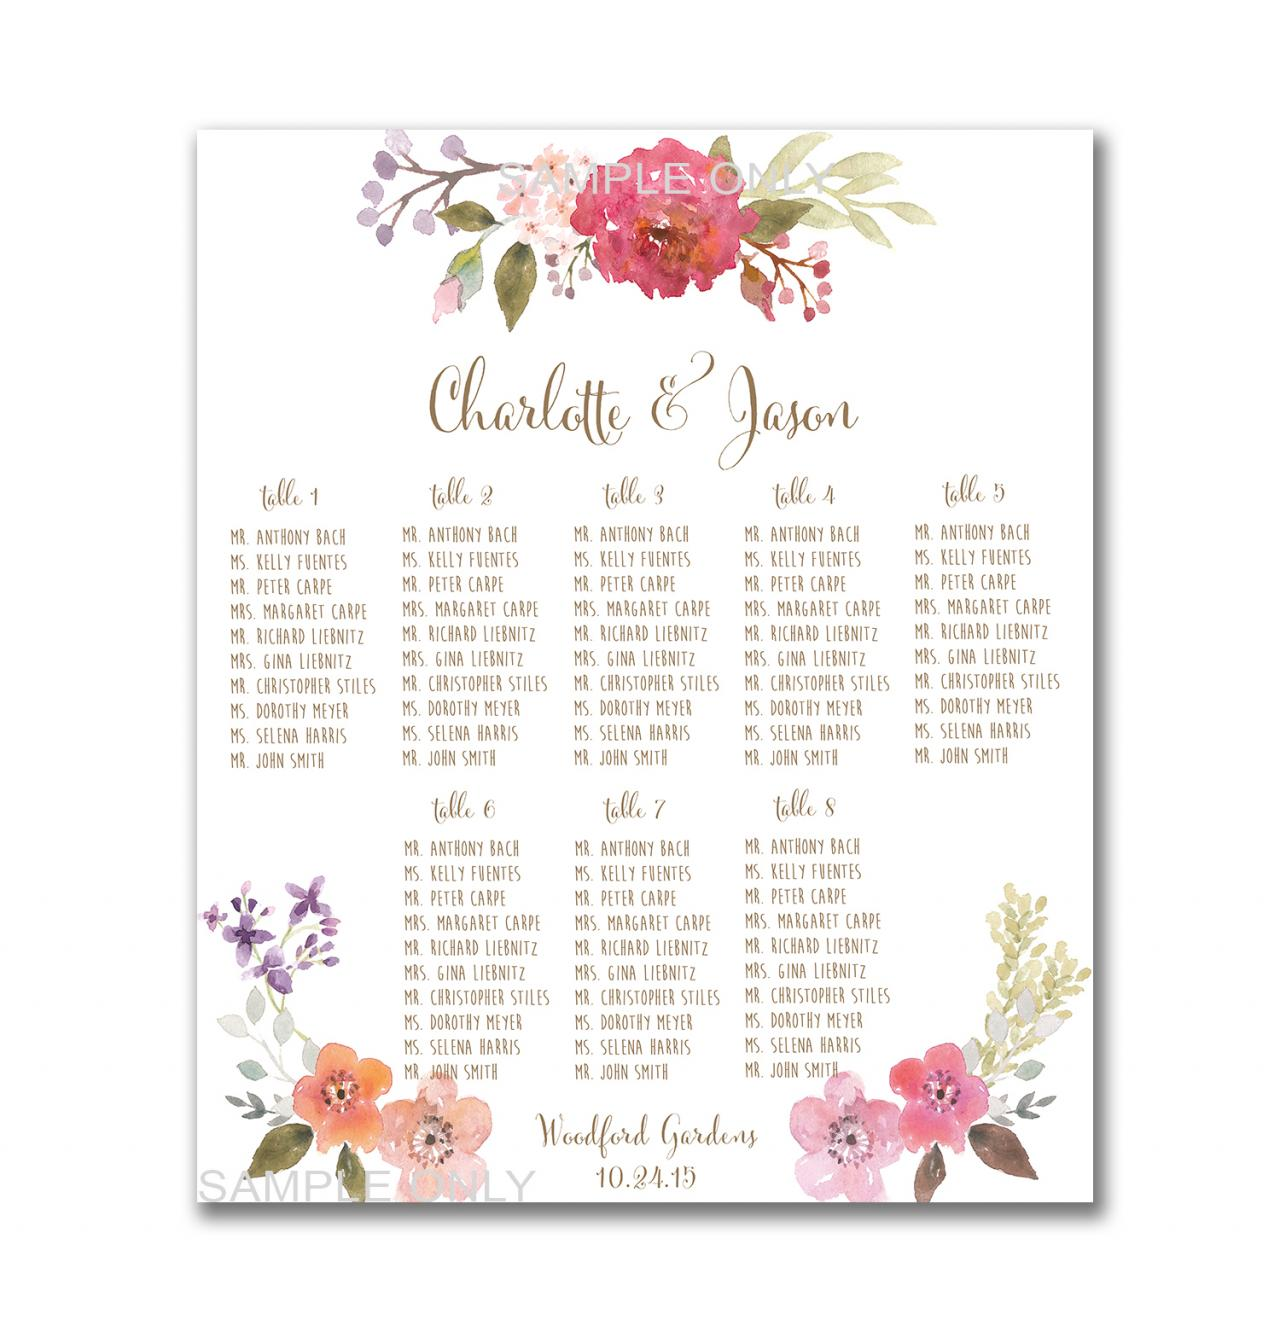 Printable Seating Chart For Wedding Reception: Wedding Table Seating Chart PRINTABLE